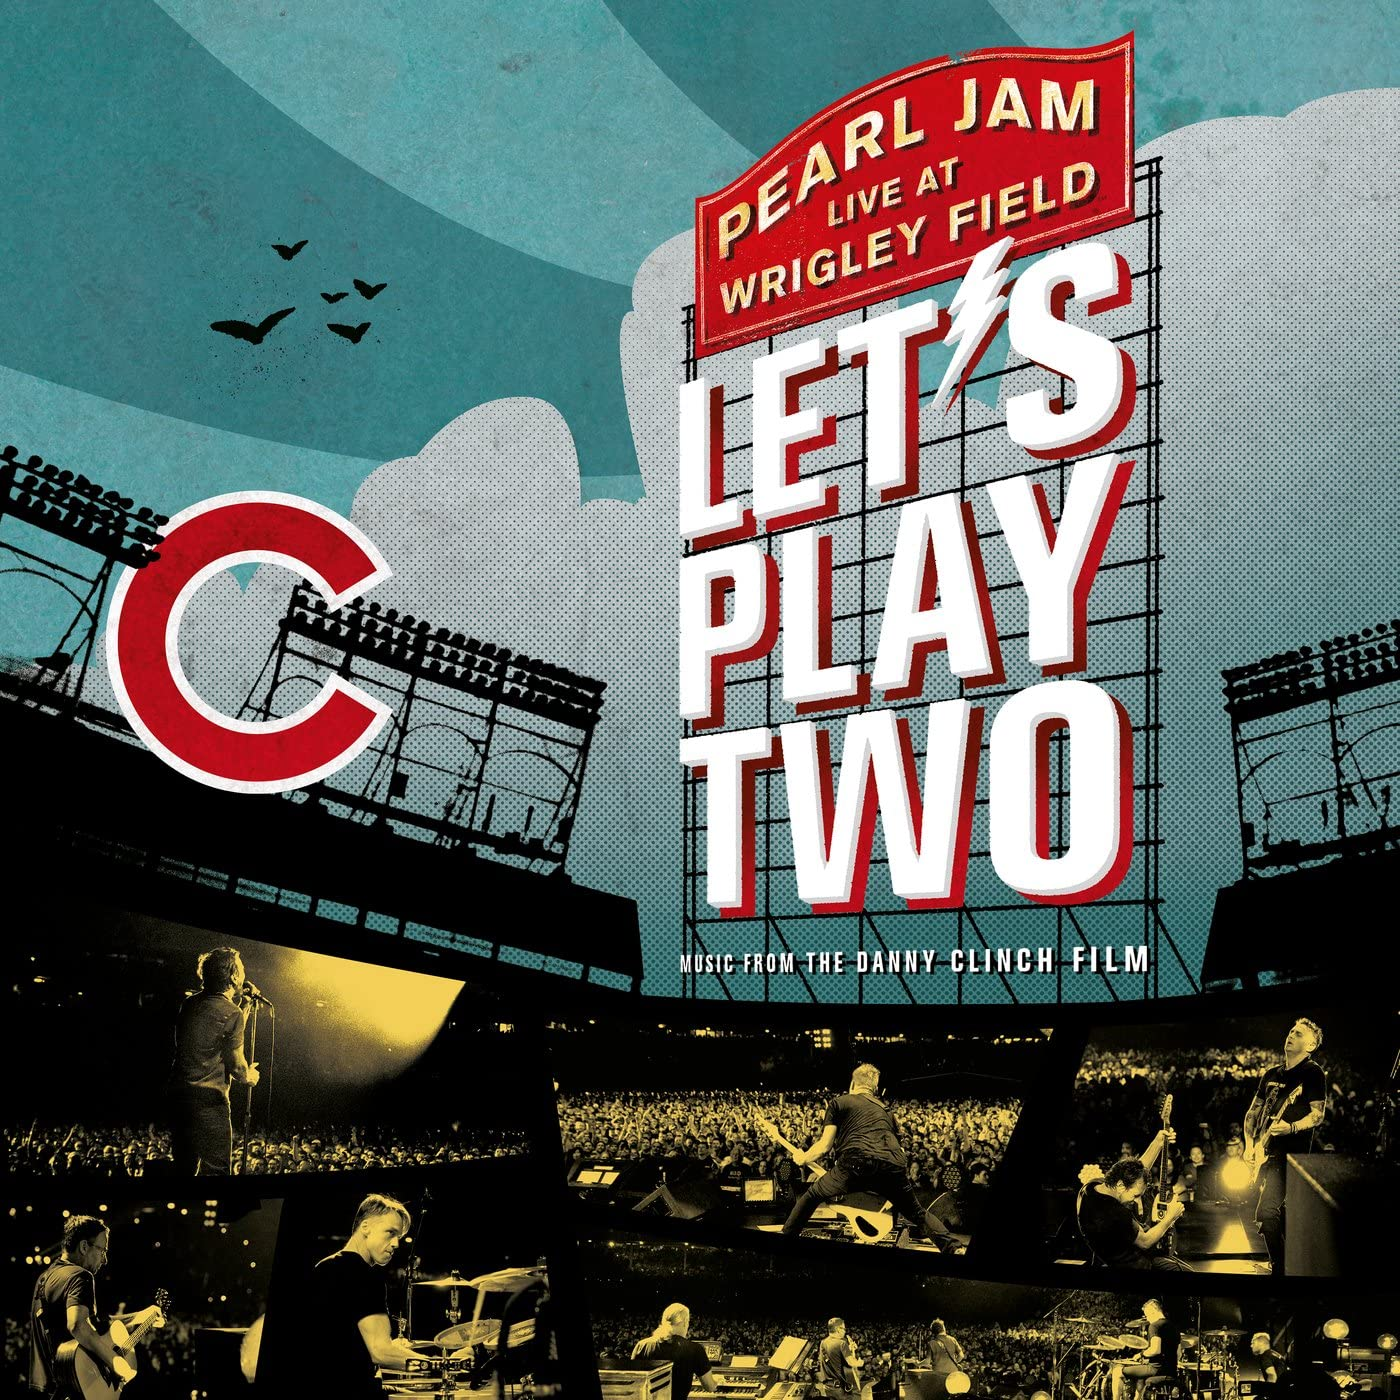 Let's Play Two (2LP)